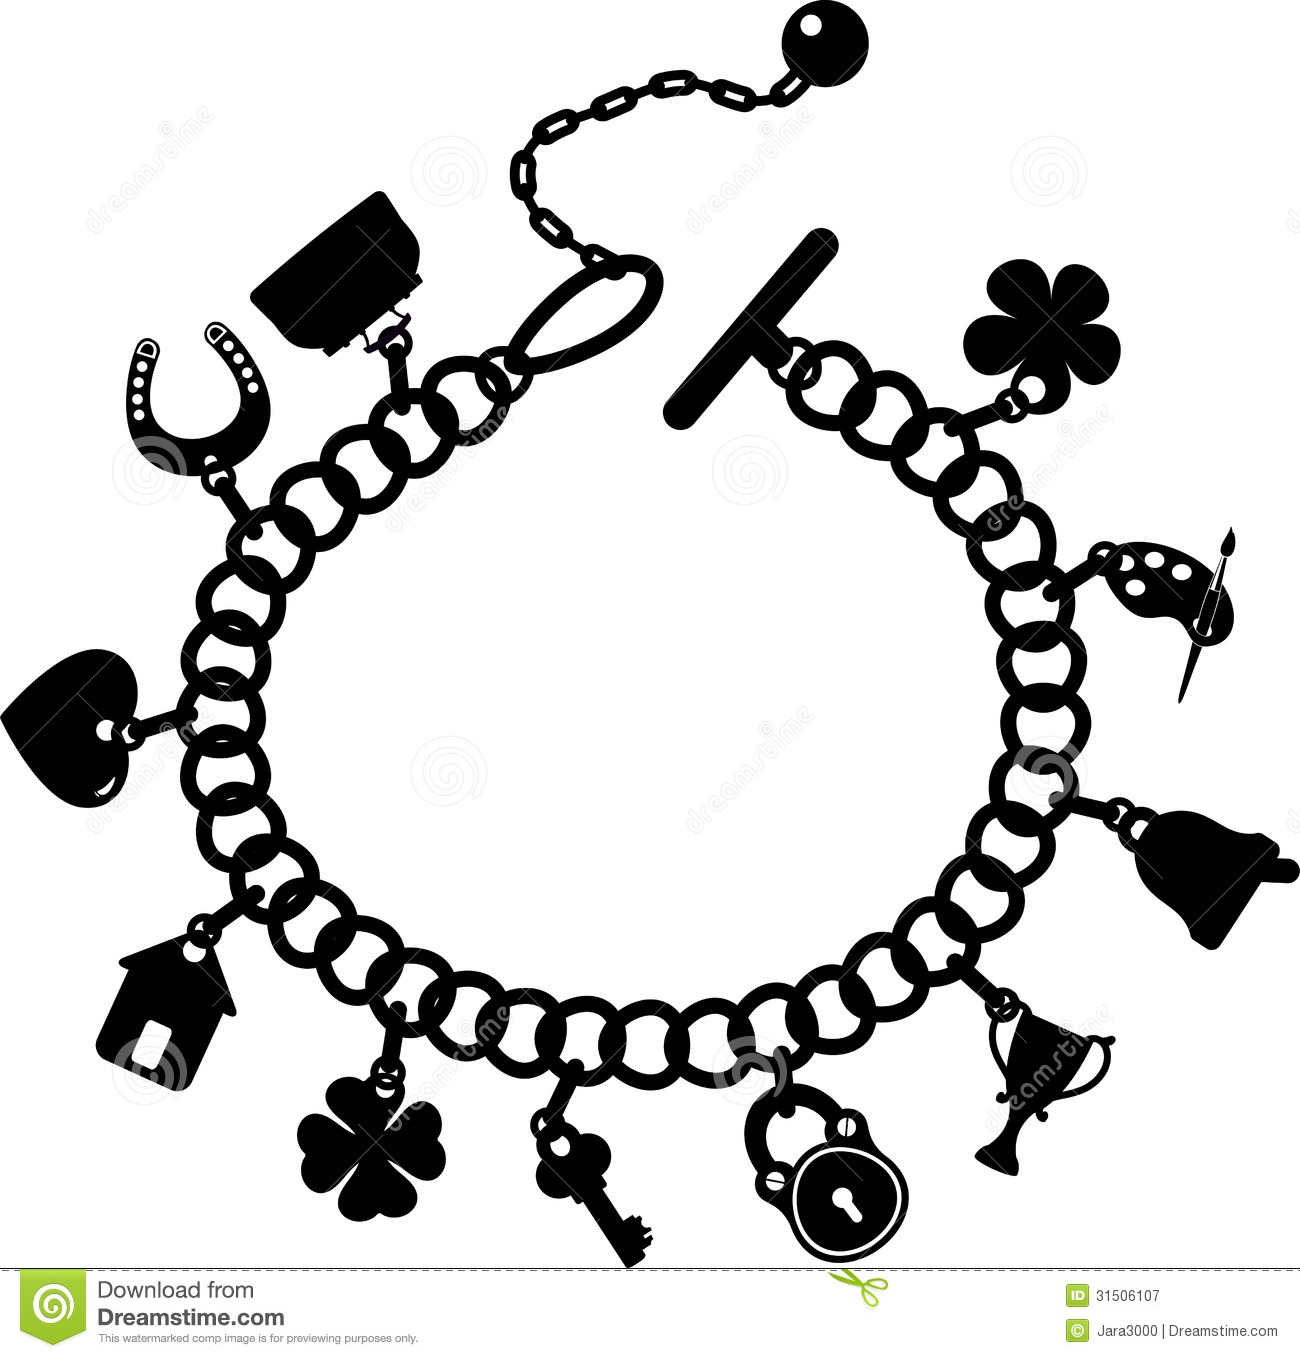 Jewelry Making Clipart - Clipart Kid